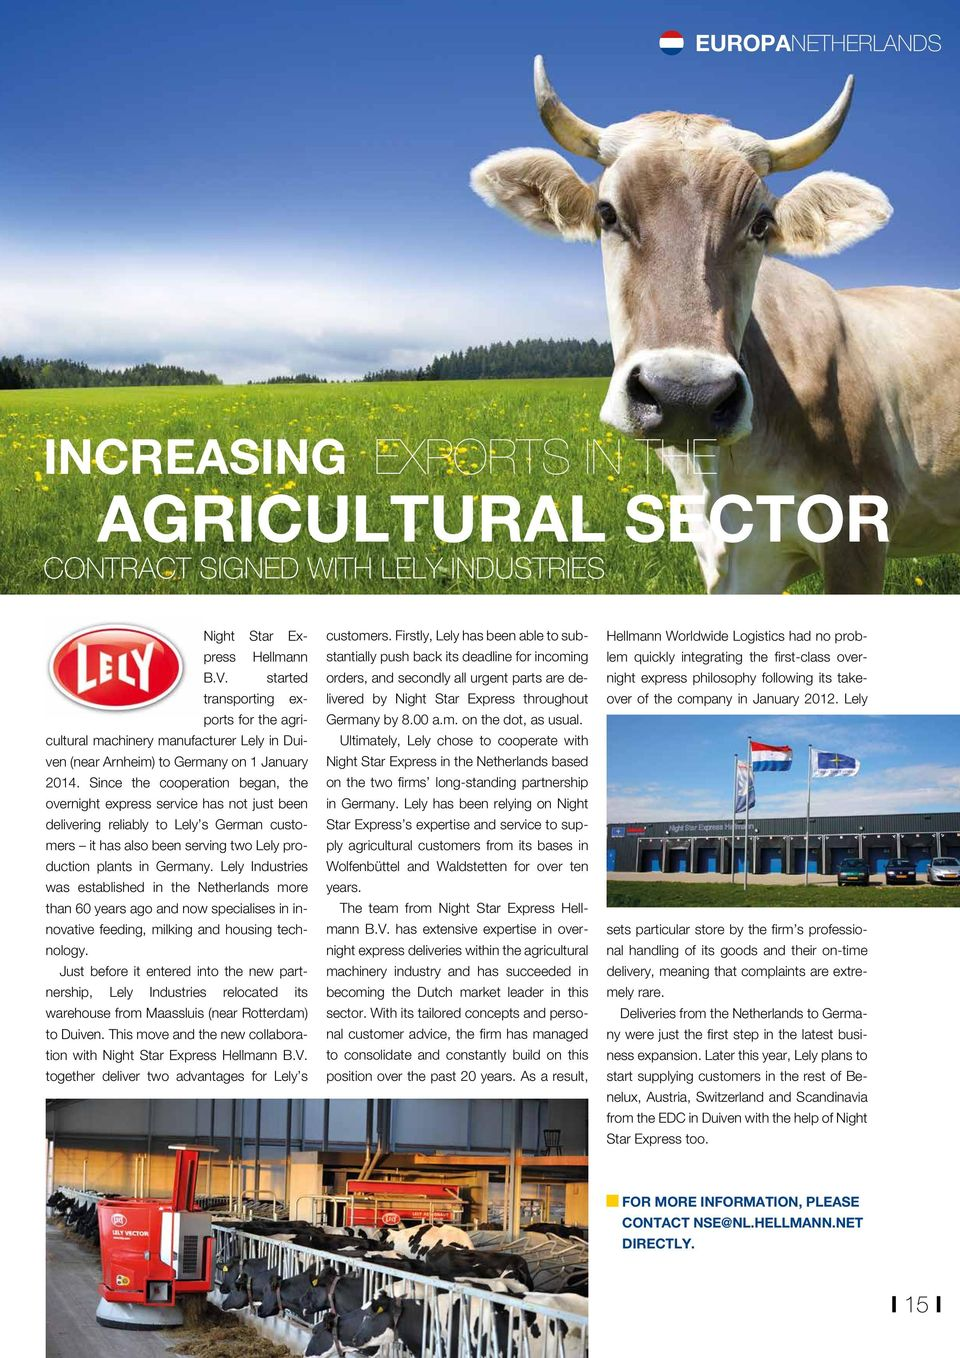 Since the cooperation began, the overnight express service has not just been delivering reliably to Lely s German customers it has also been serving two Lely production plants in Germany.